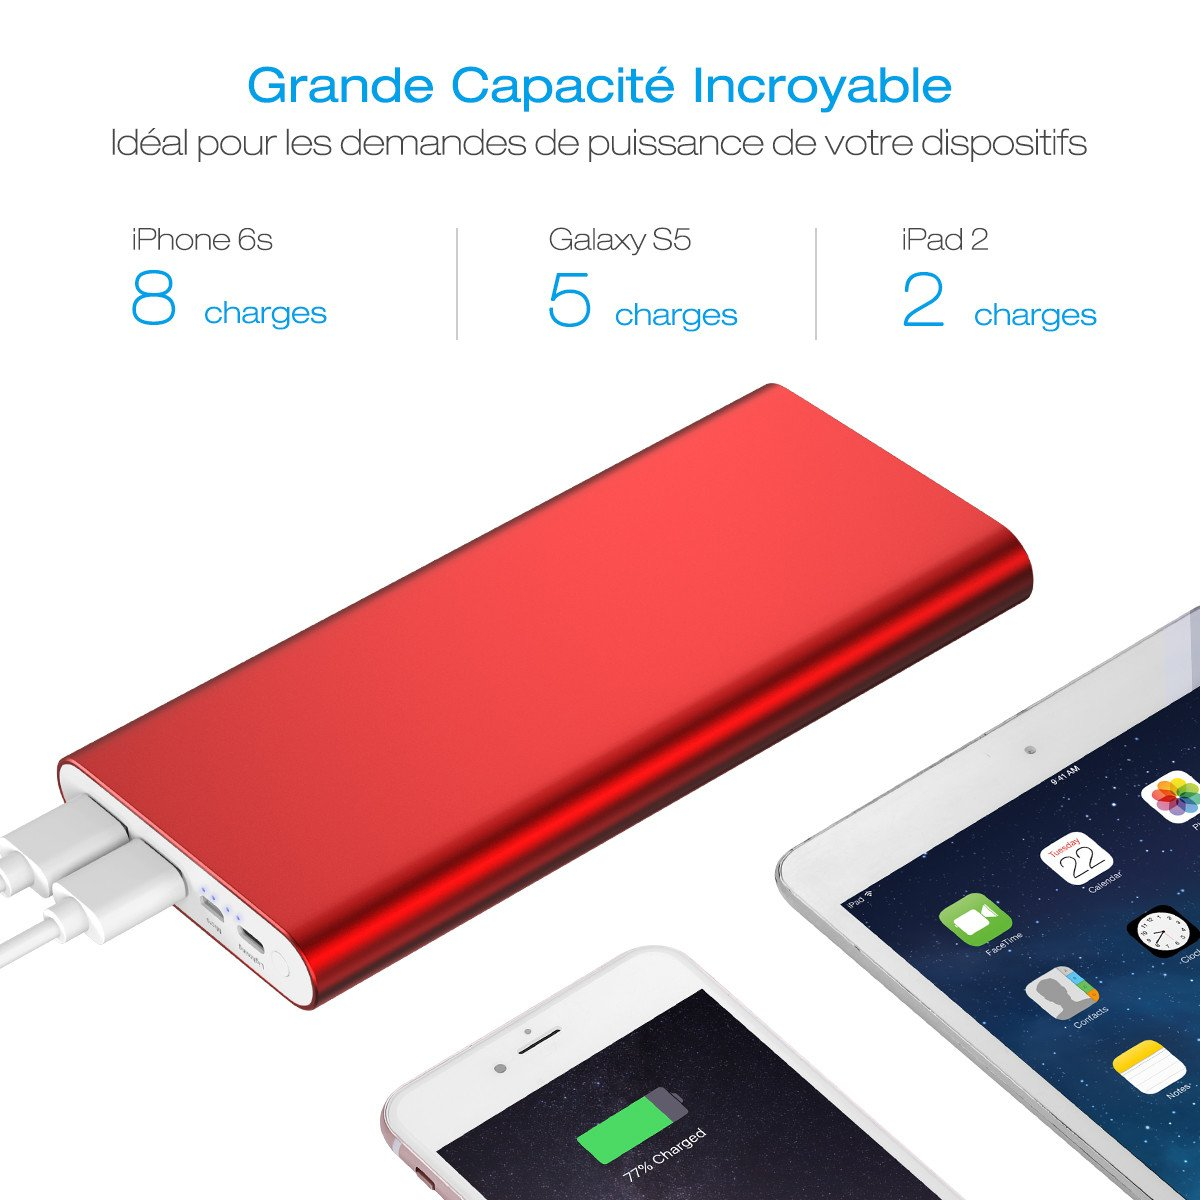 POWERADD Pilot 4GS Plus Chargeur Portable 20000mAh Batterie iPhone avec Double Ports d'Entrée Lightning et Micro USB pour iPhoneX/6S/7 Samsung Galaxy et Les Android Téléphones-Rouge